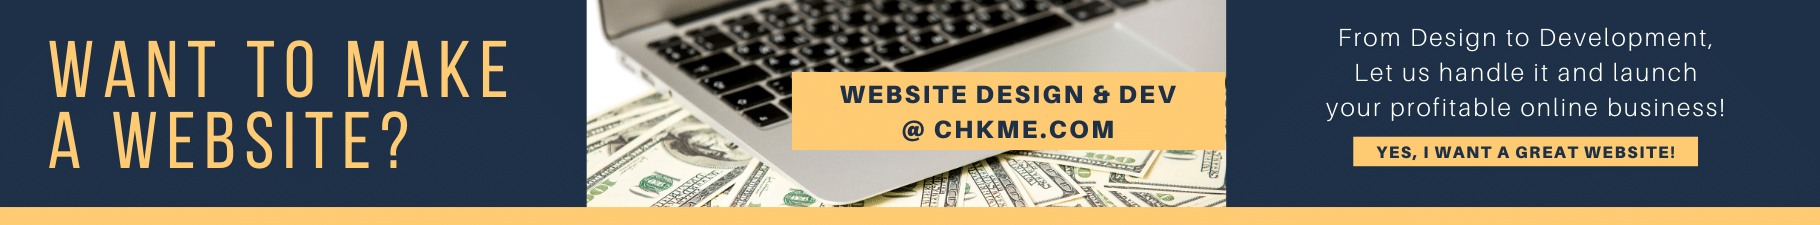 chkme web development